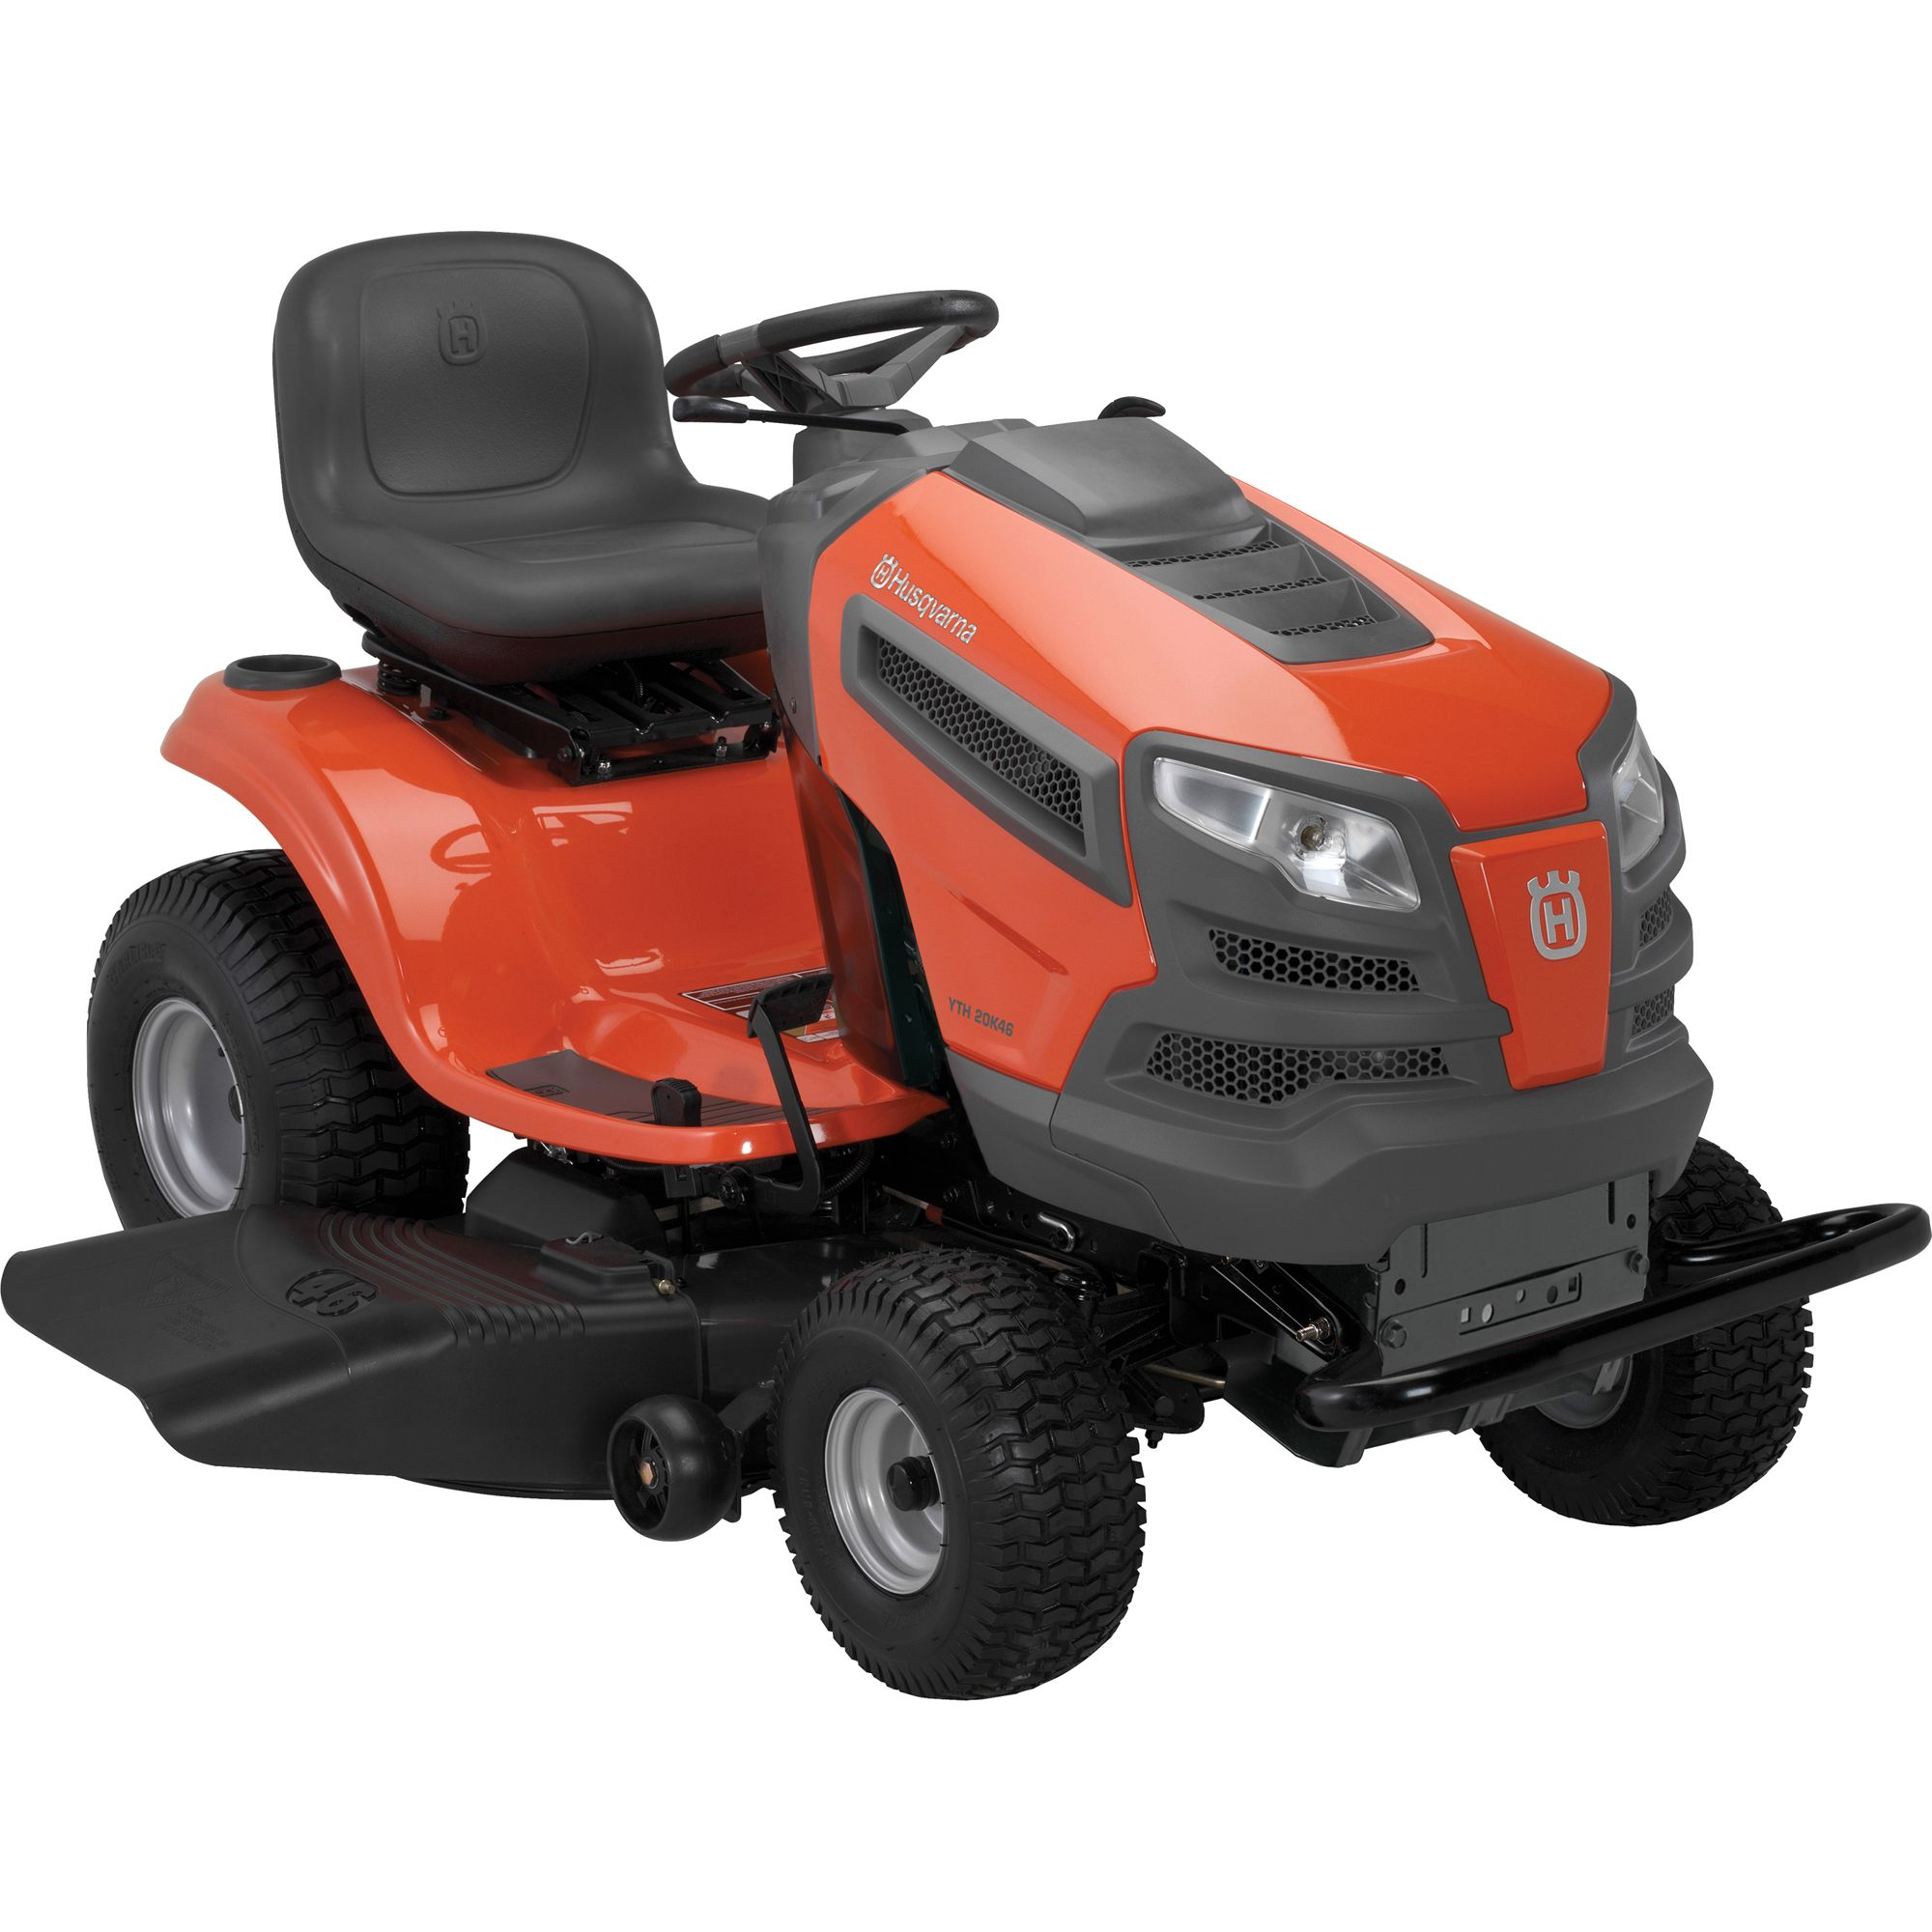 Husqvarna 24046 46 Kohler 20 hp Gas Powered Riding Yard